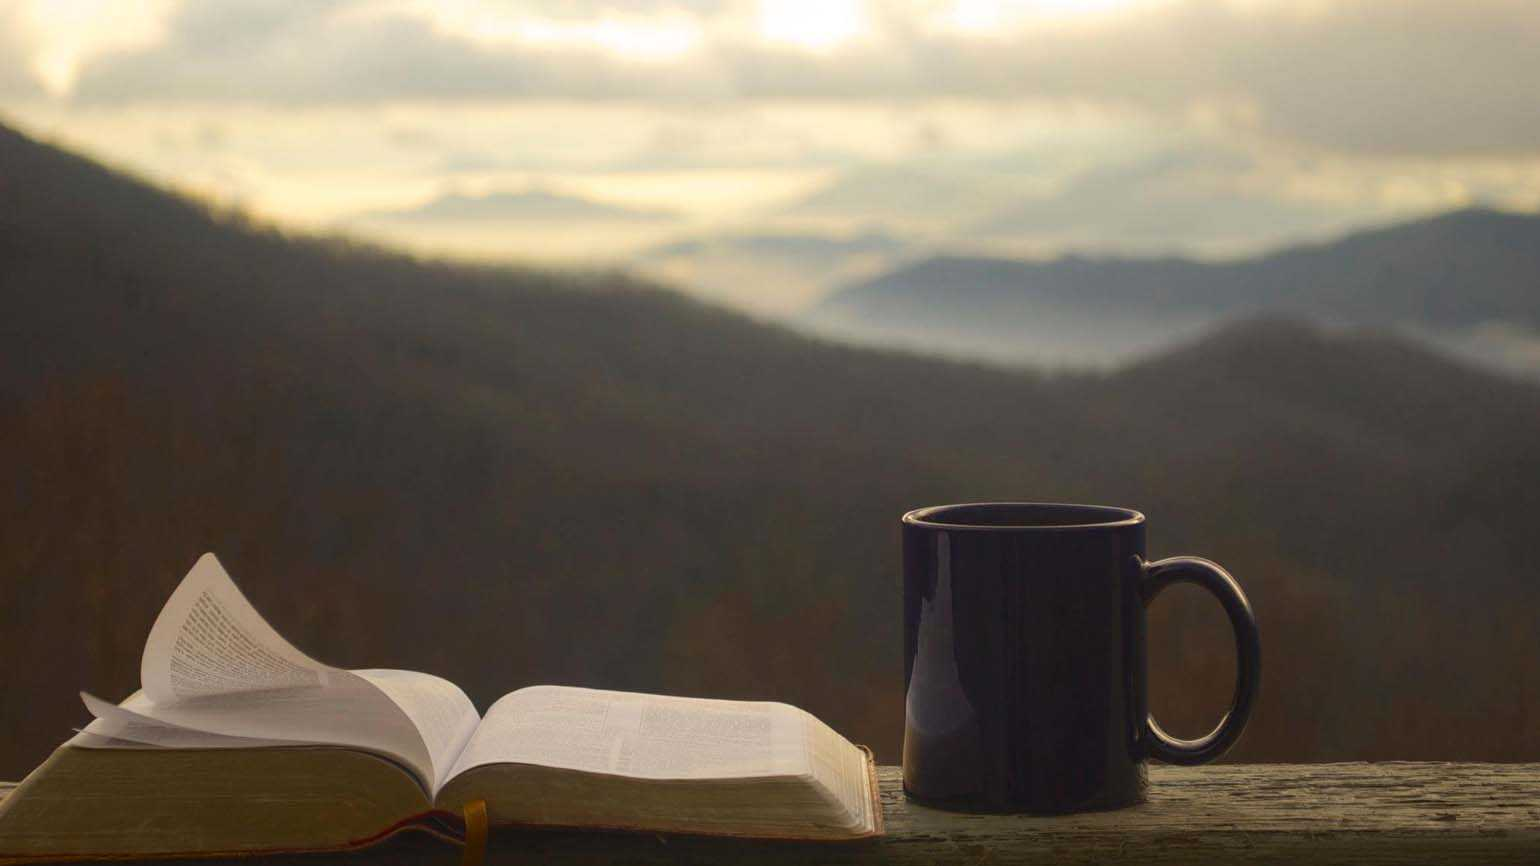 The Bible and a mug; Getty Images